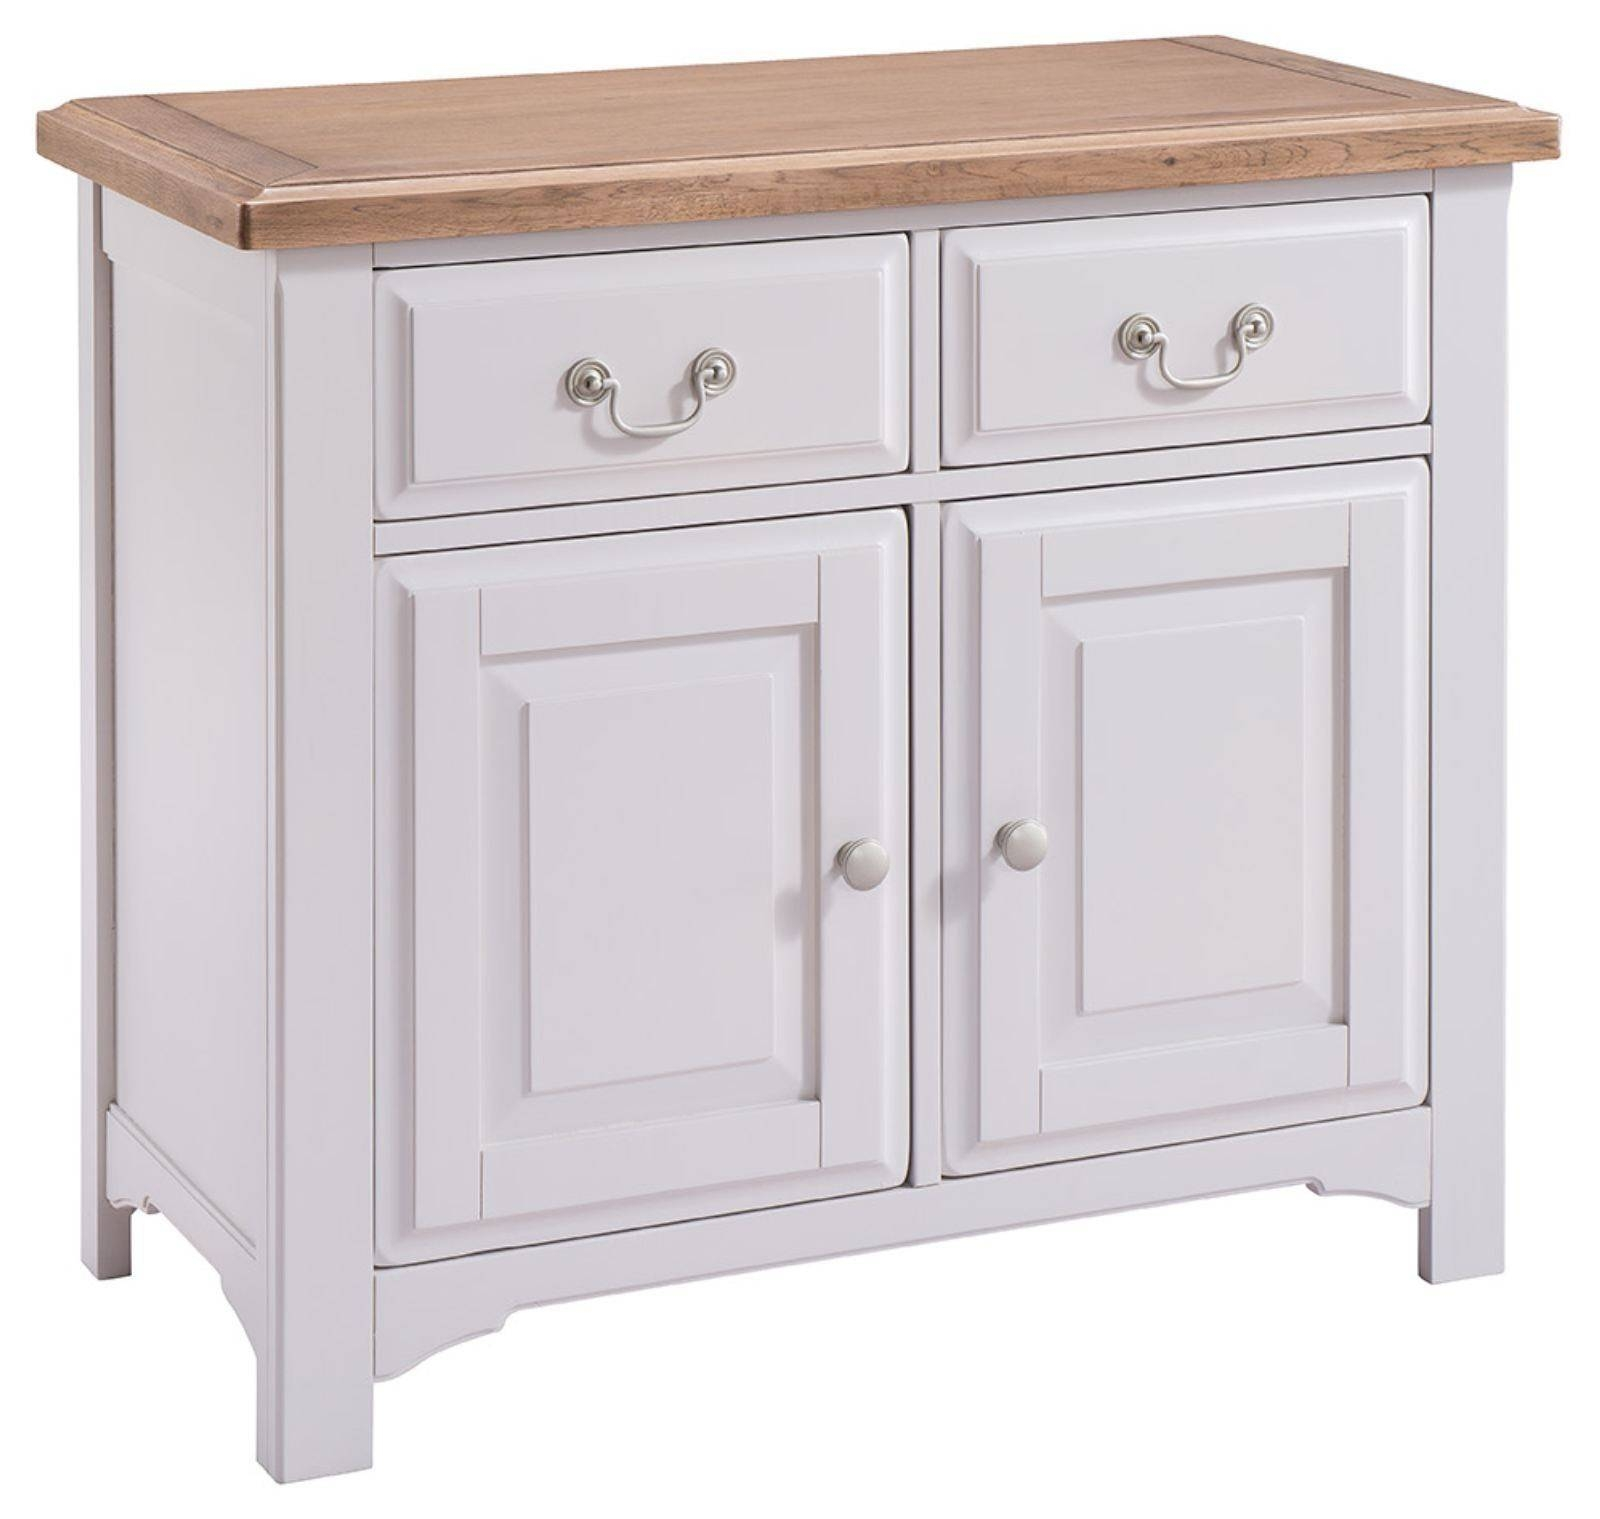 Hutch® – Buxton Light Grey Painted Small Sideboard Intended For Small Sideboard (#10 of 20)